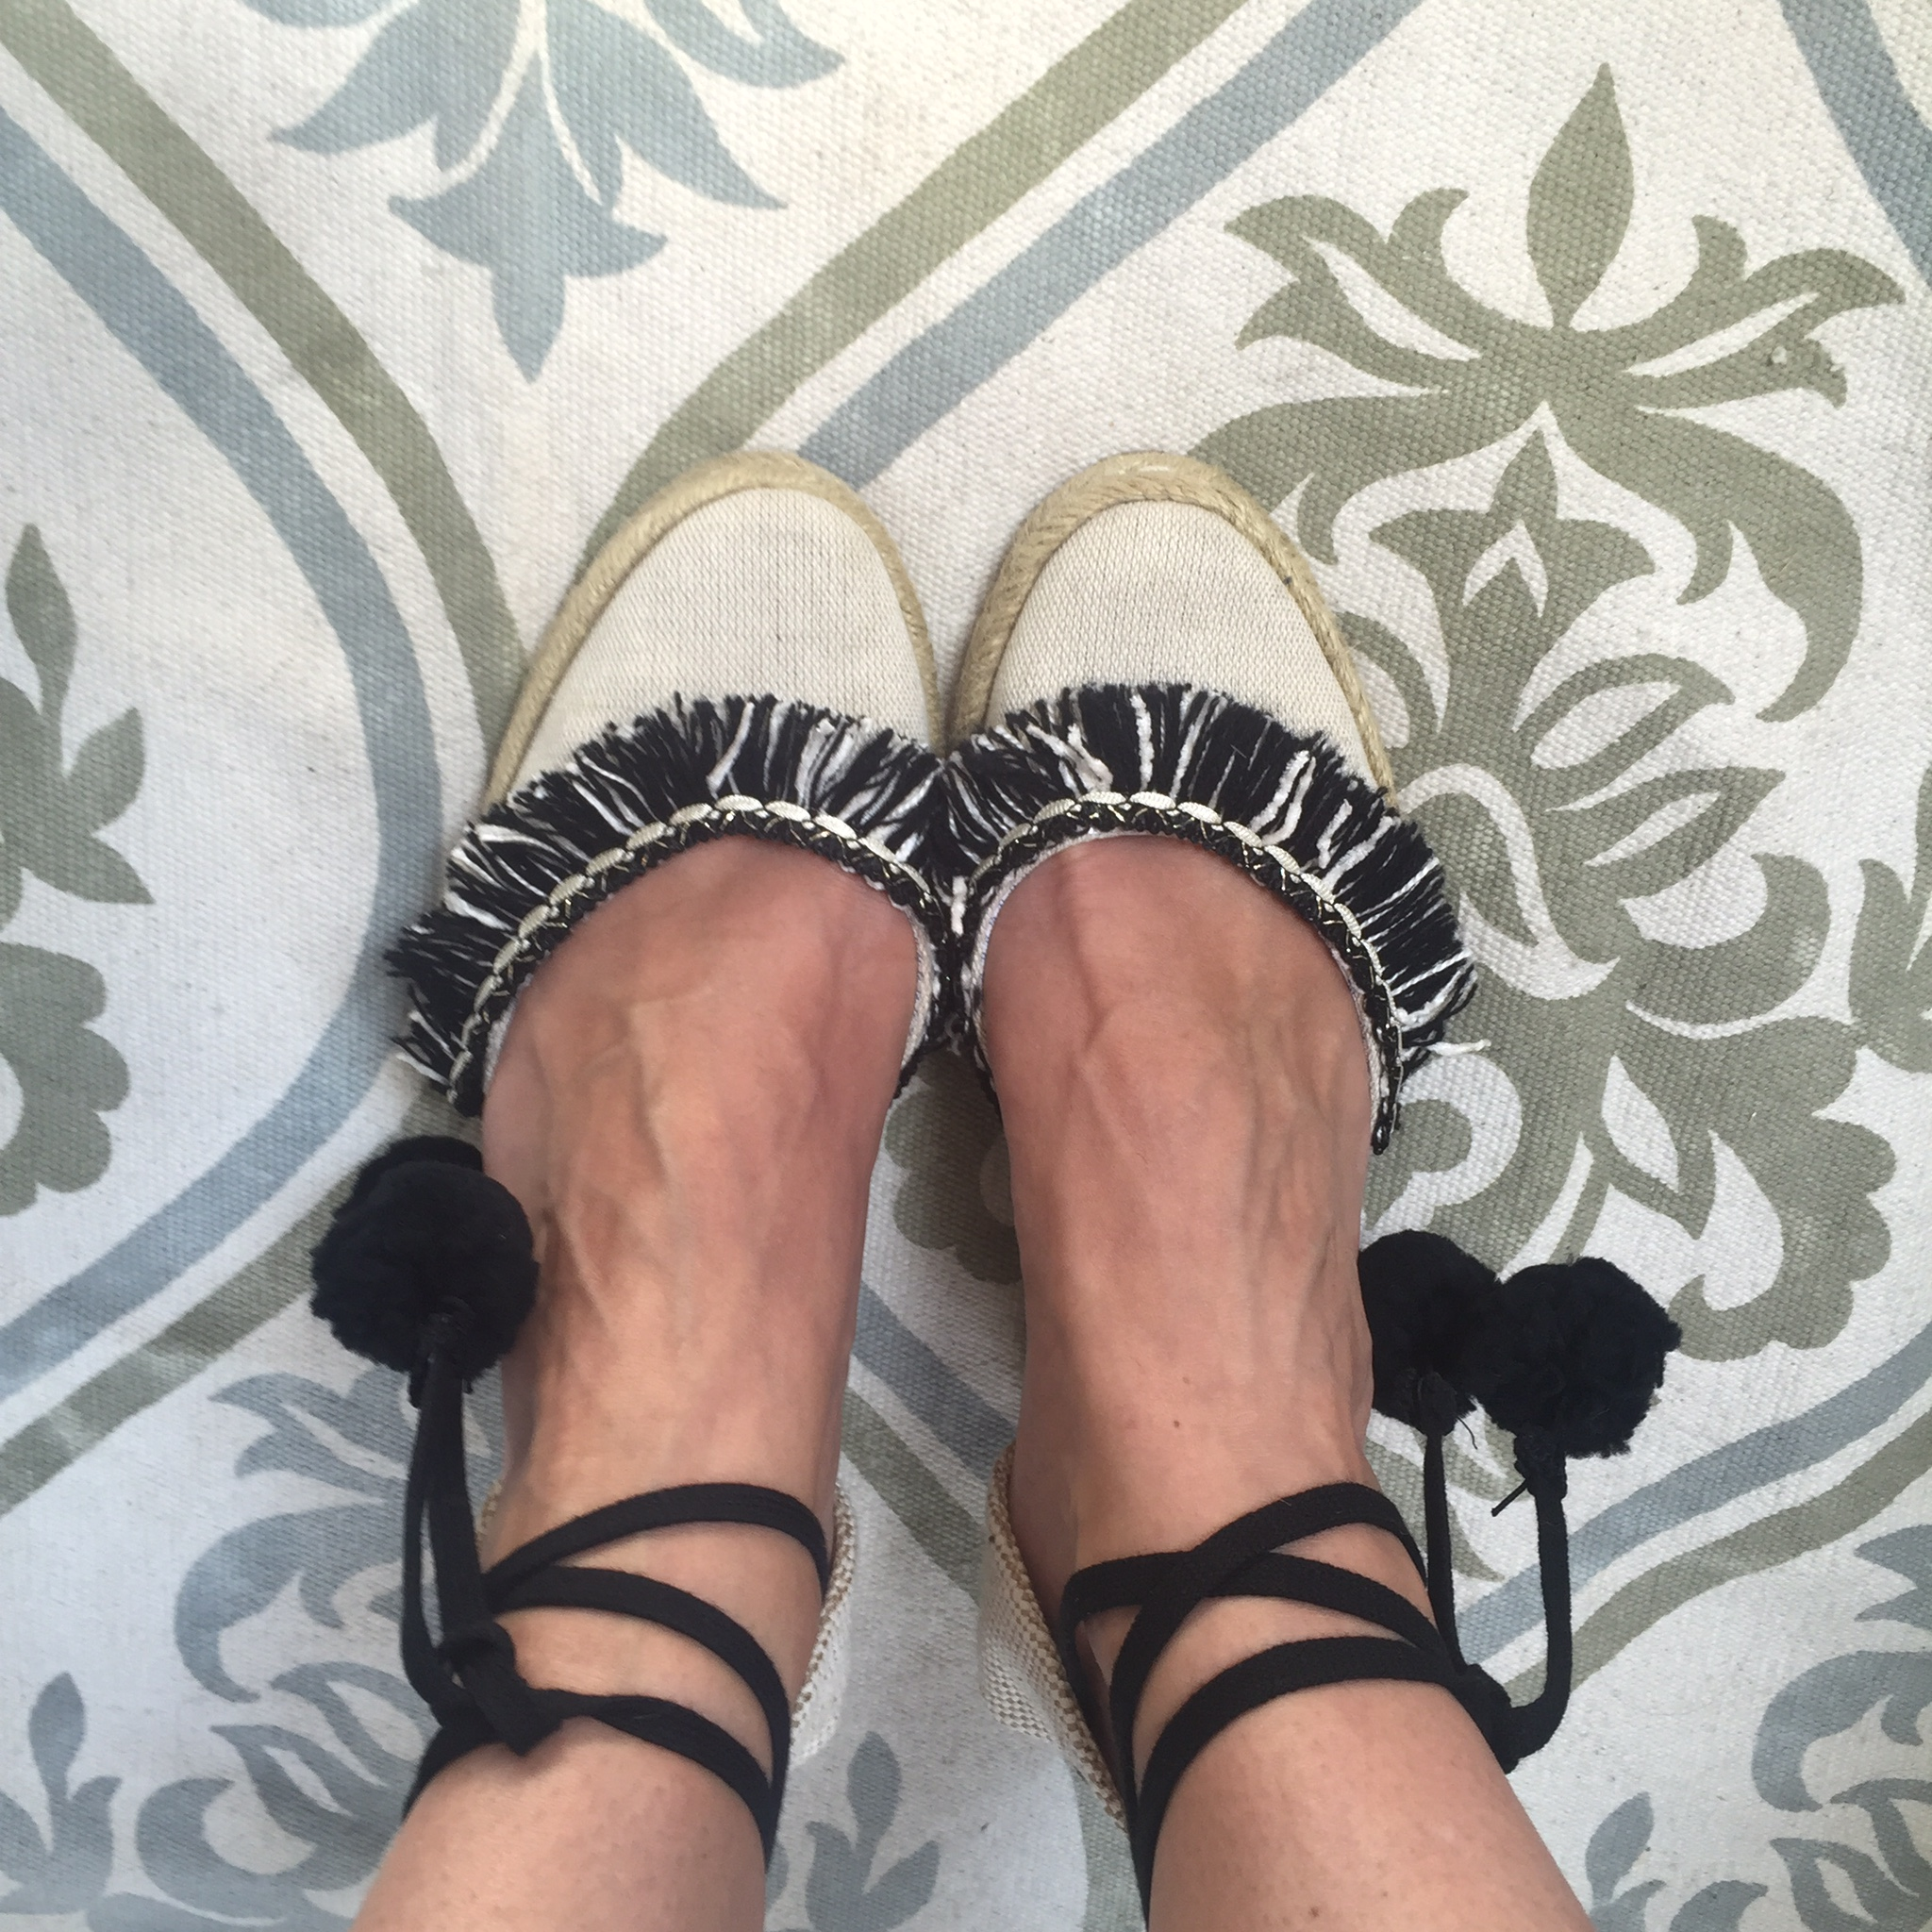 Voila! New shoes for the season